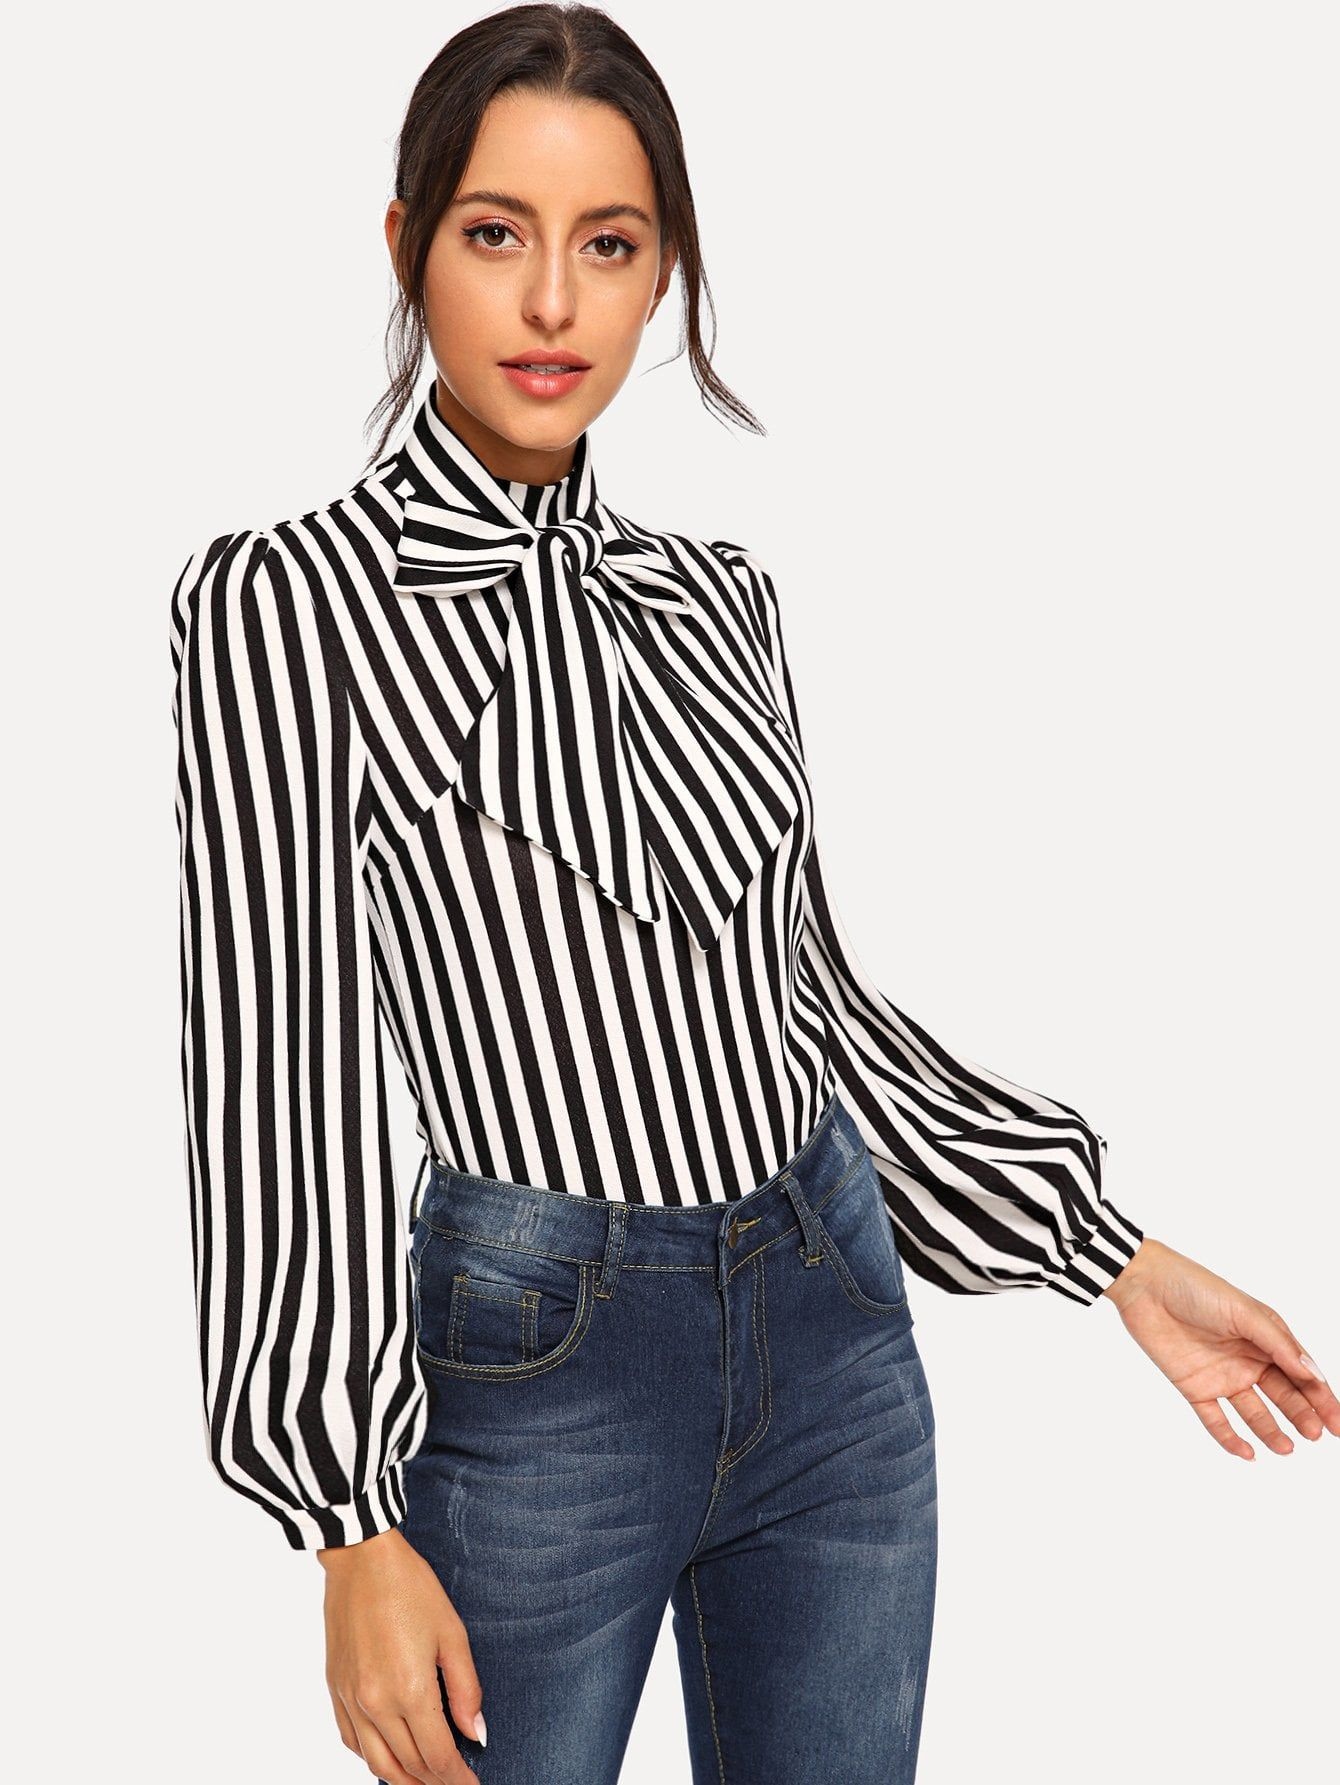 20a841e288b Classy Striped Top Regular Fit Stand Collar Long Sleeve Bishop Sleeve Half  Placket Black and White Regular Length Tie Neck Striped Top